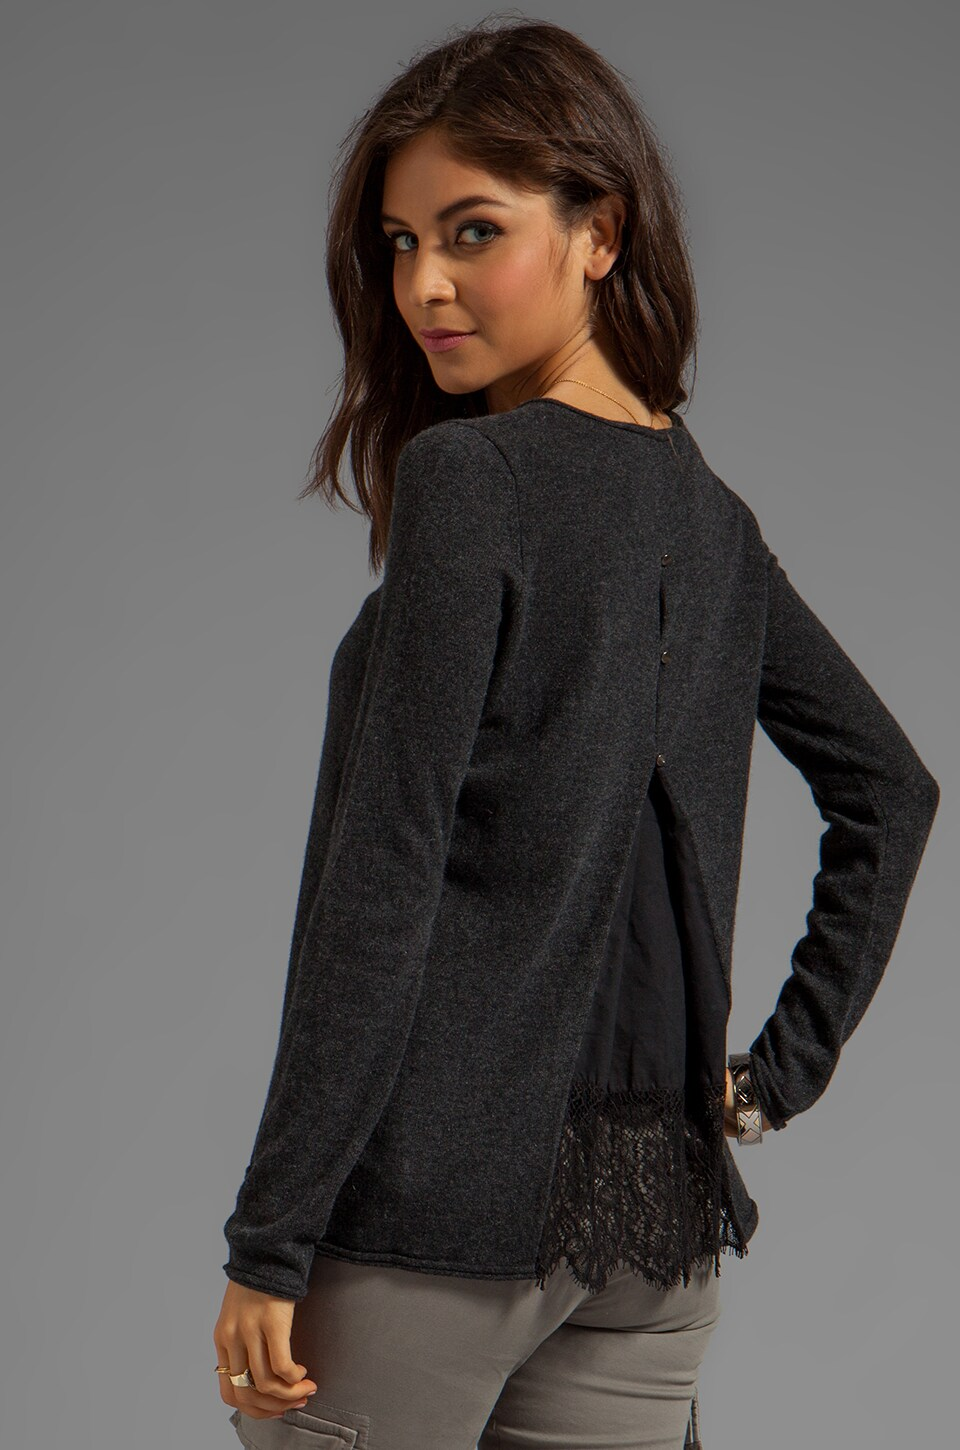 Autumn Cashmere Crew With Lace Pleat Pullover in Pepper